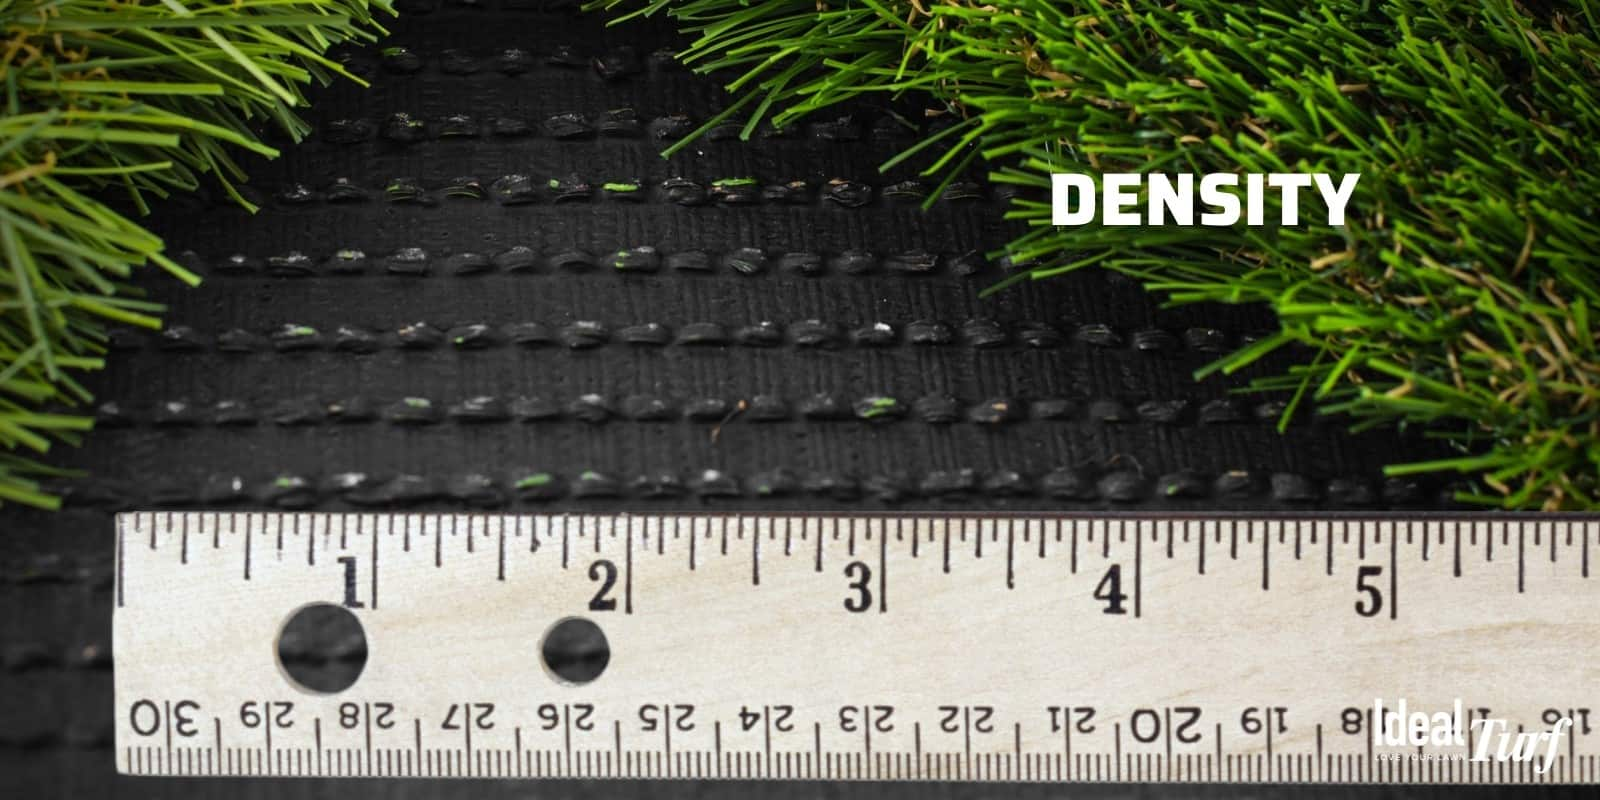 Turf backing with ruler to measure stitch rate and density of turf fibers